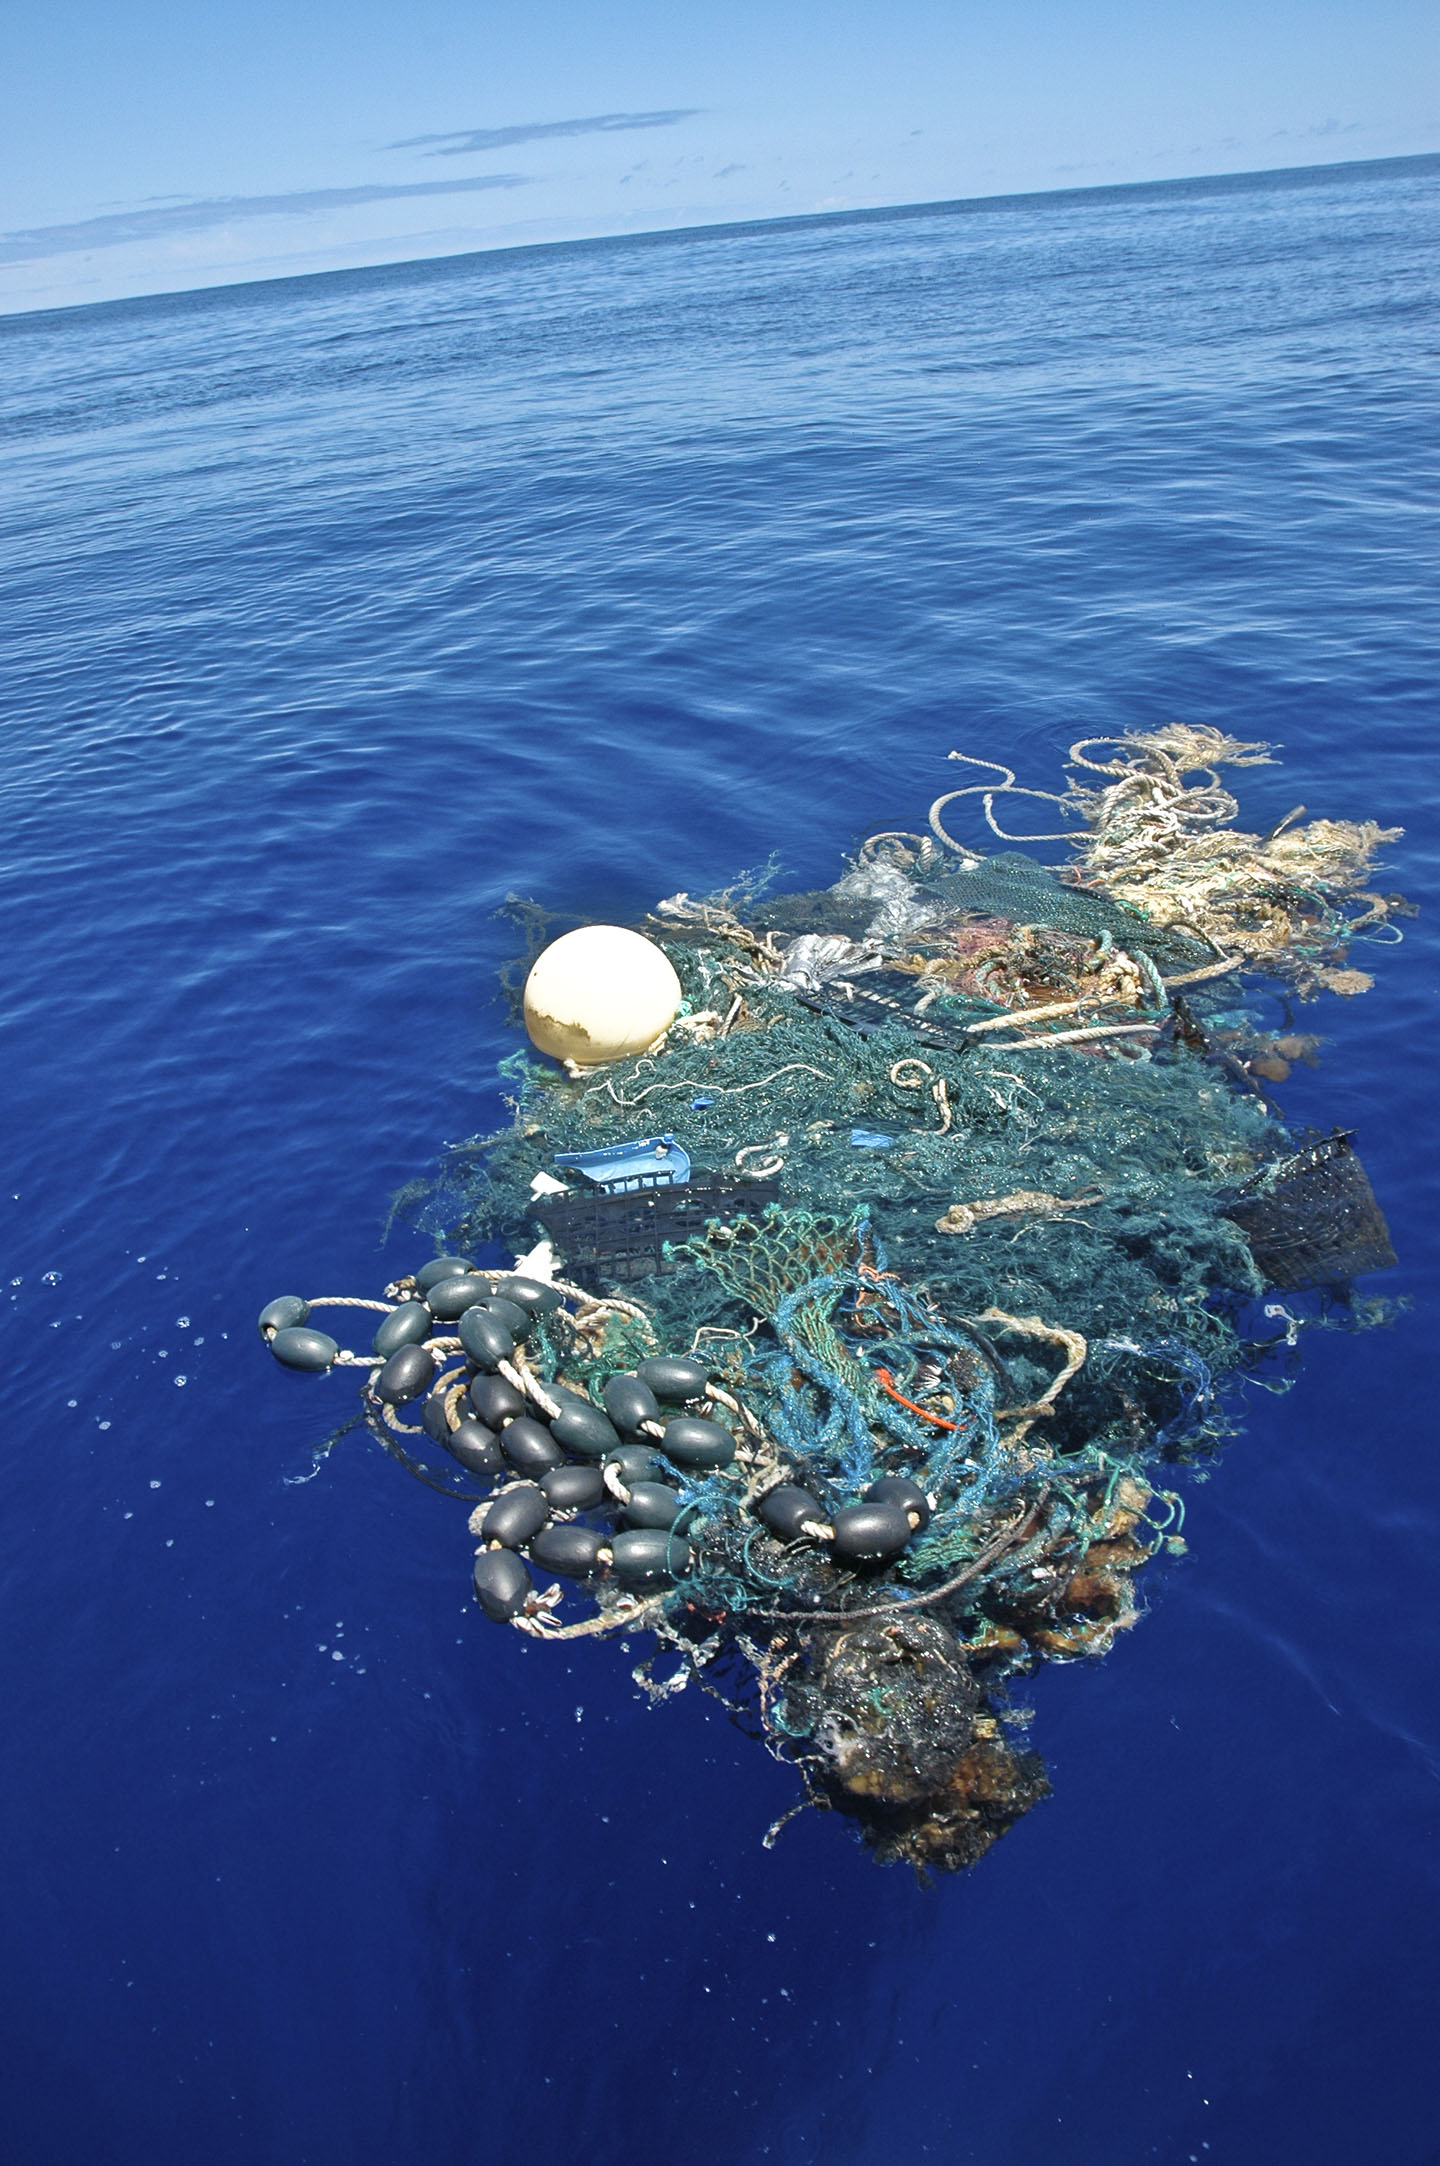 a clump of floating debris in the ocean